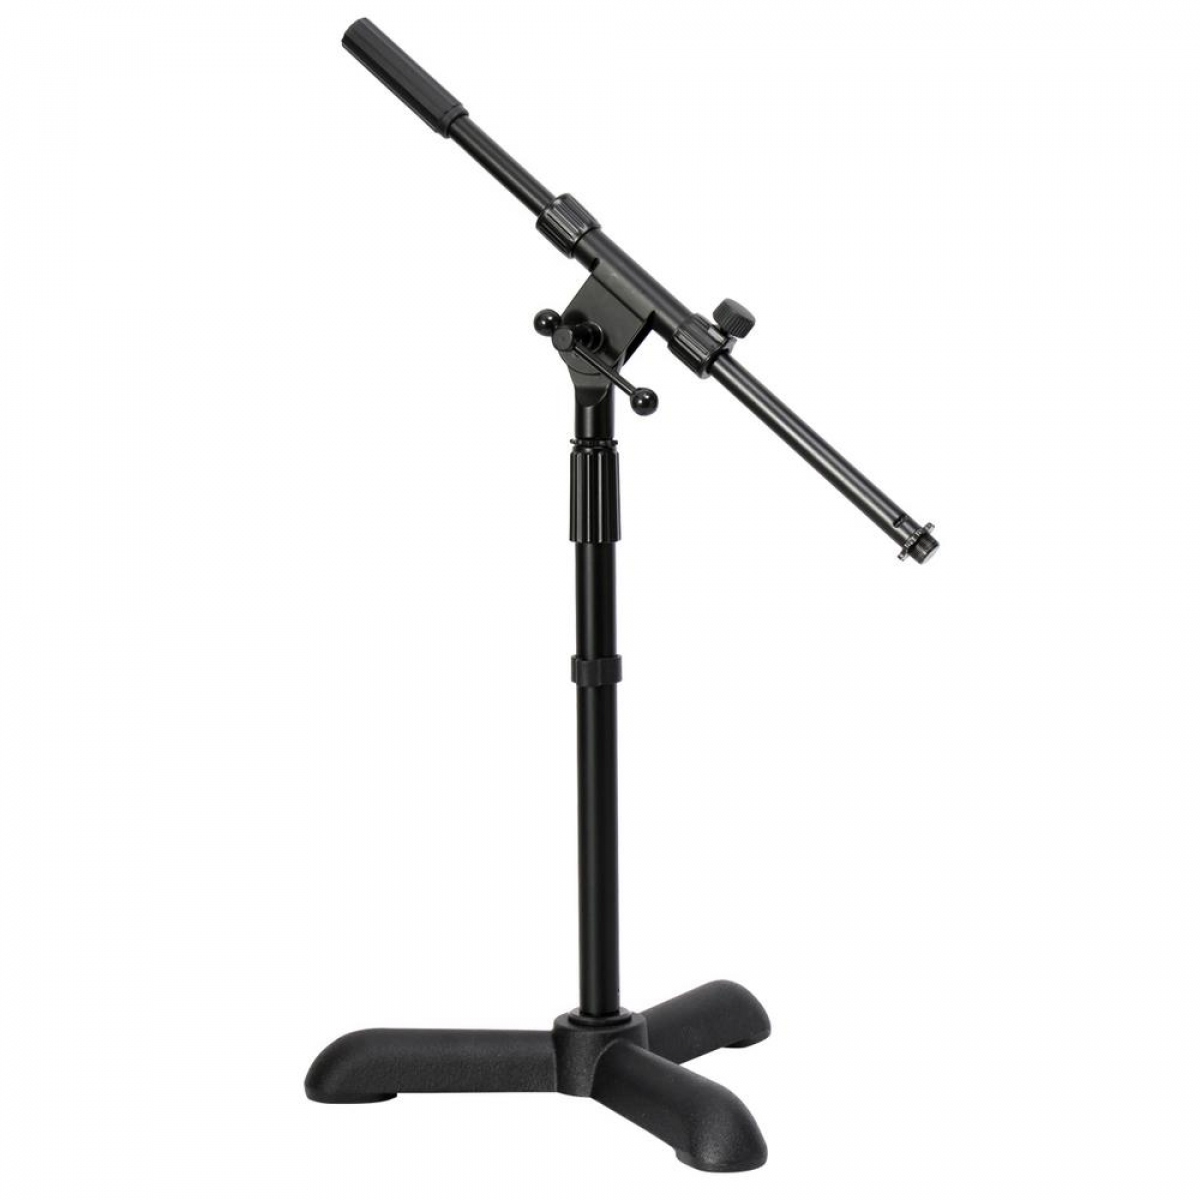 Kick Drum Amp Mic Stand by The Music People Inc.